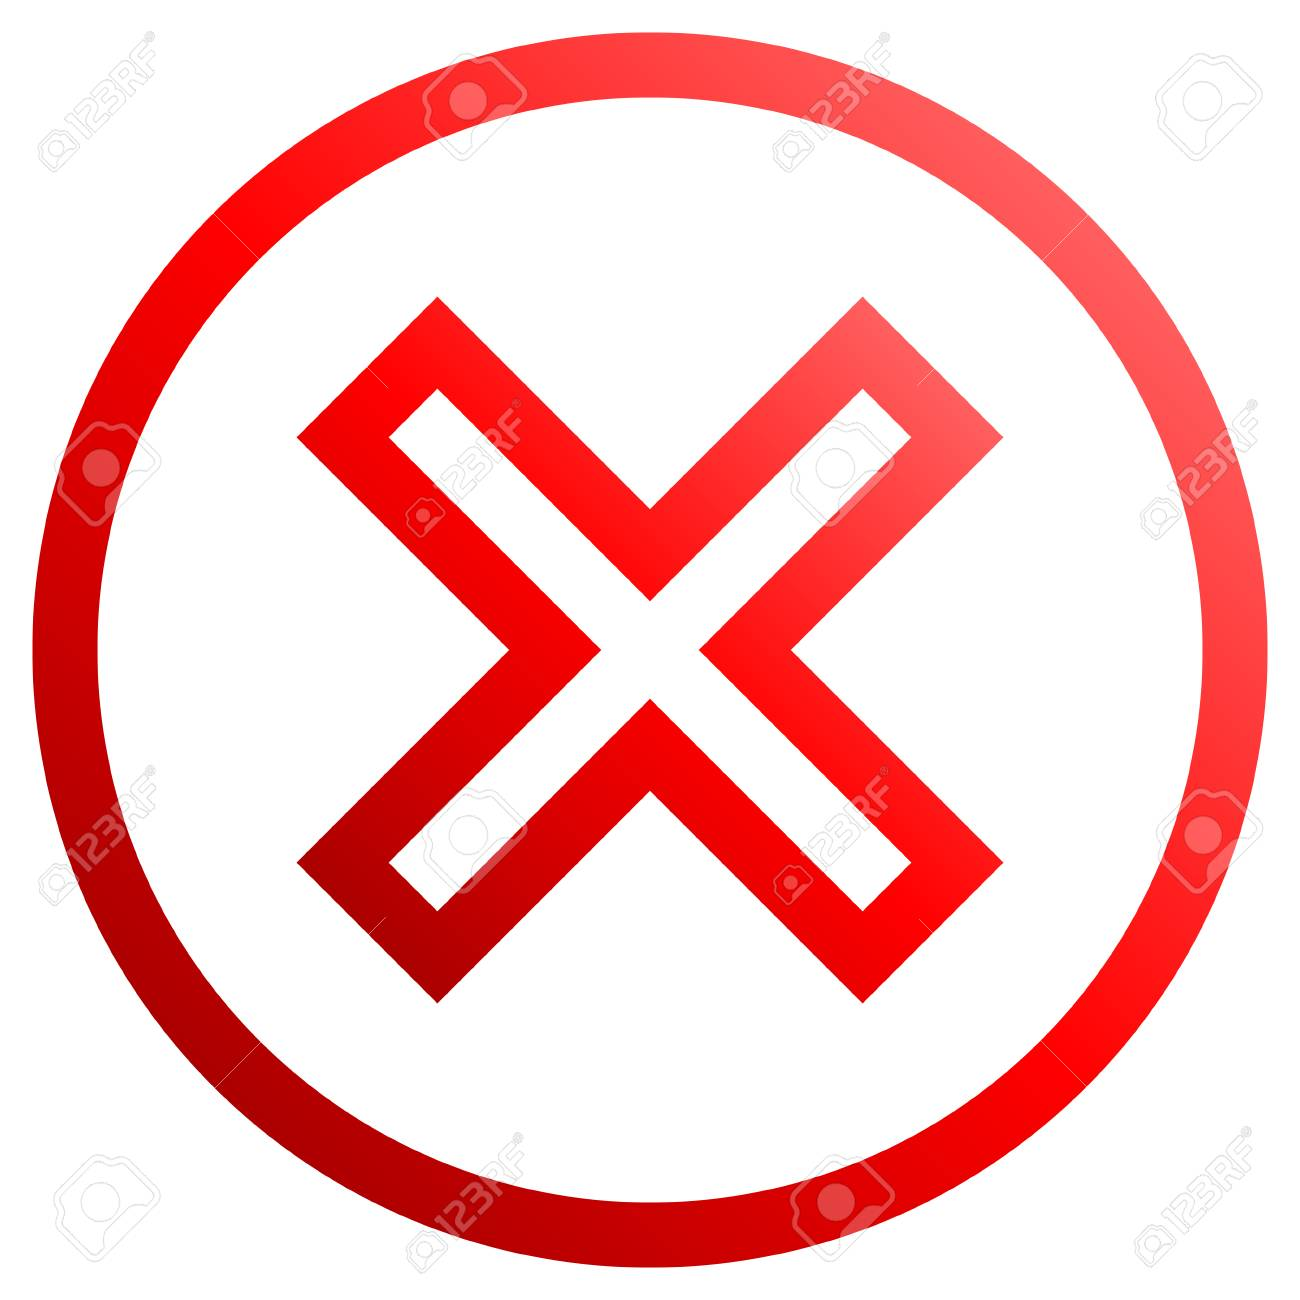 Check marks - red gradient outline, cross icon inside of circle - vector illustration - 117662363